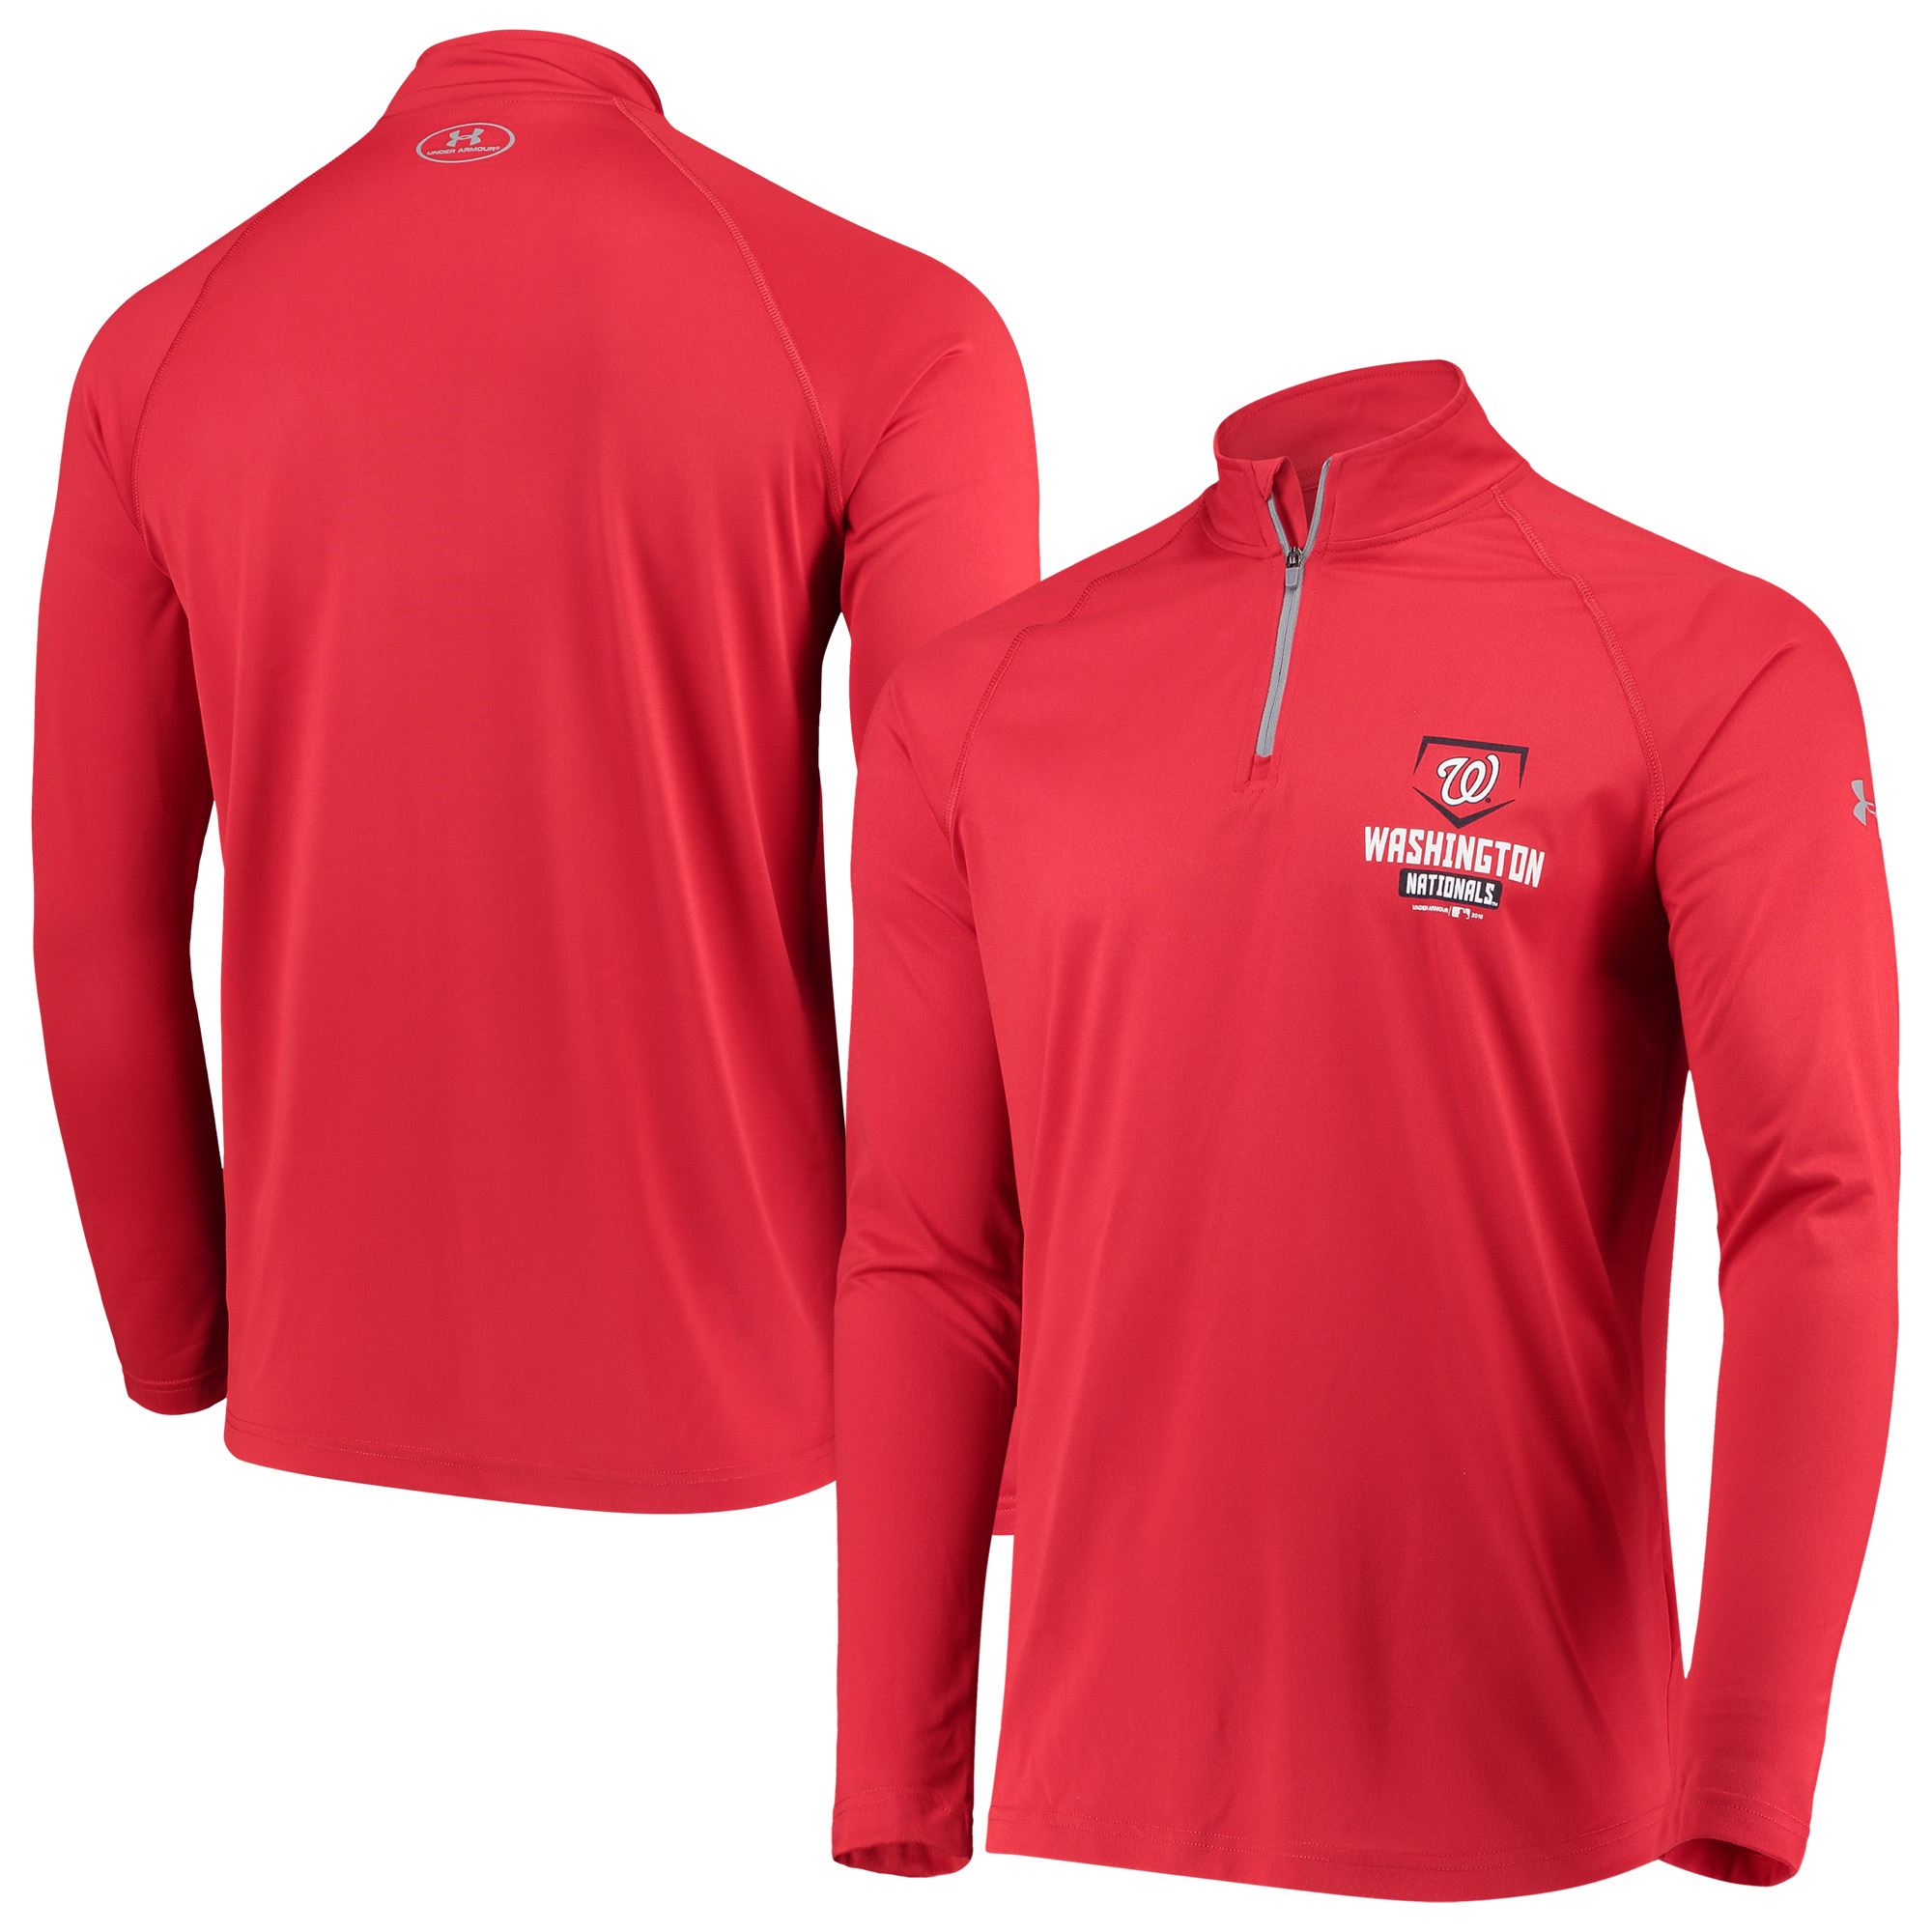 Washington Nationals Under Armour Tech Quarter-Zip Performance Pullover Jacket - Red